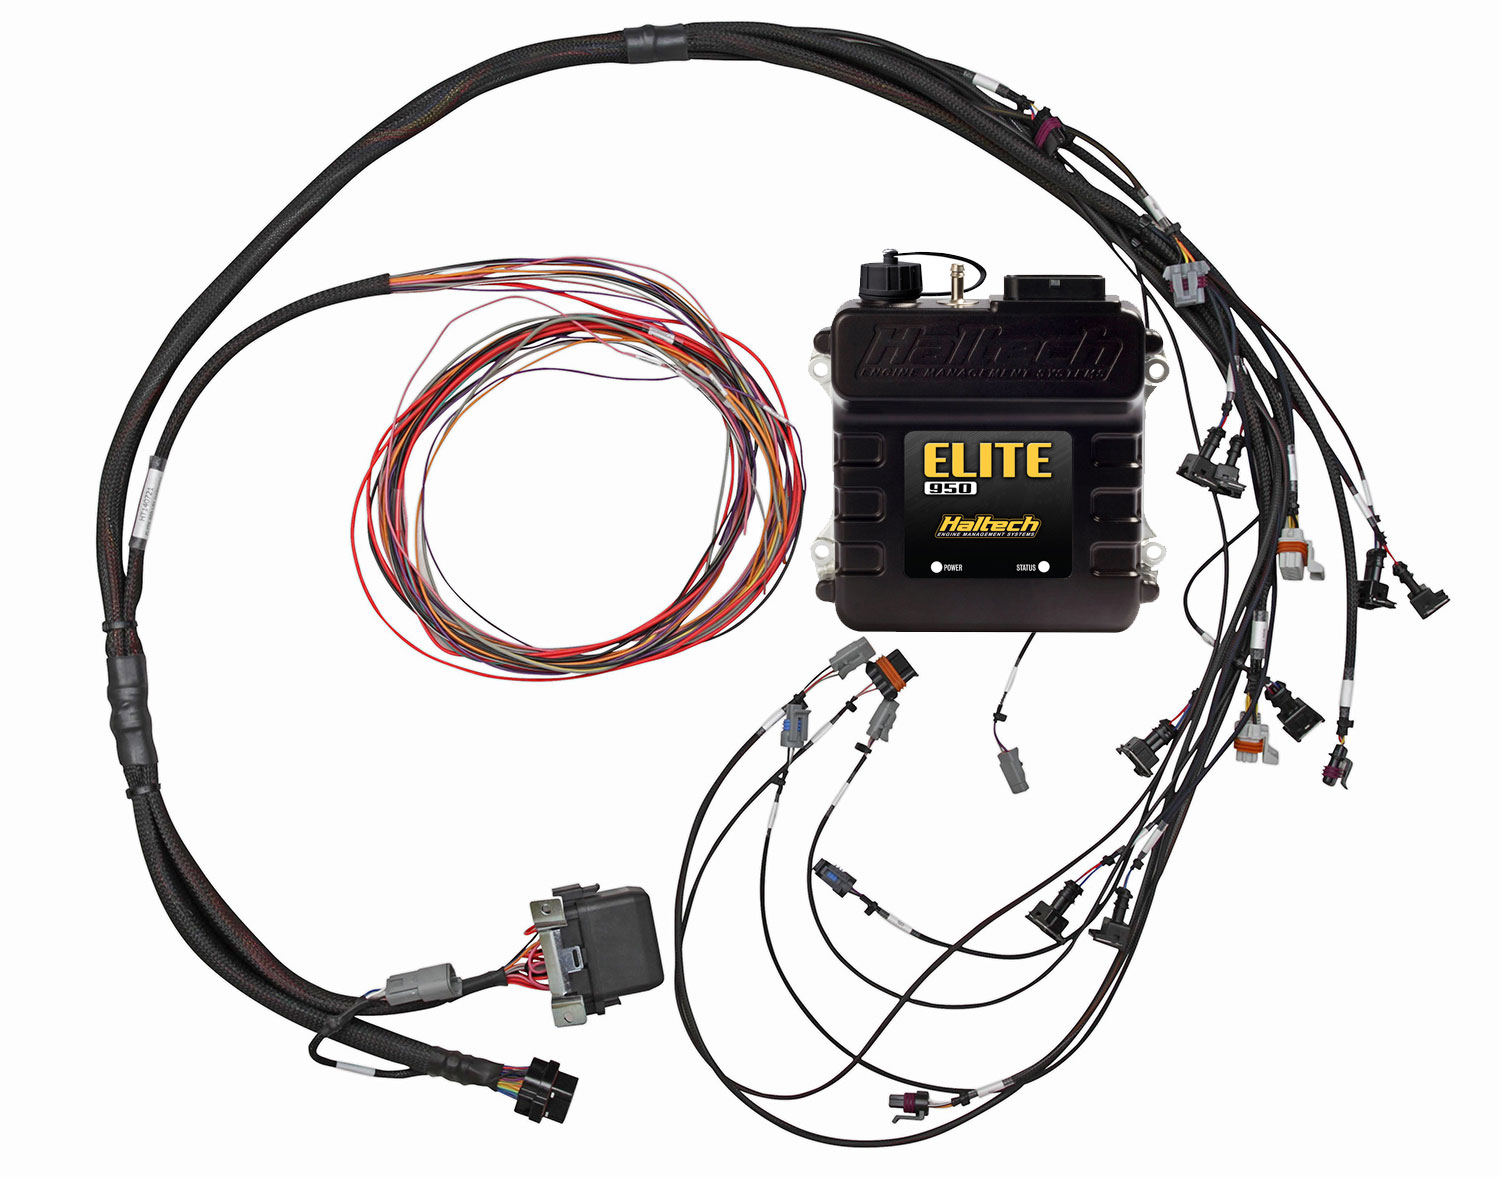 elite 950 ecu + ls1/ls6 terminated engine harness kit